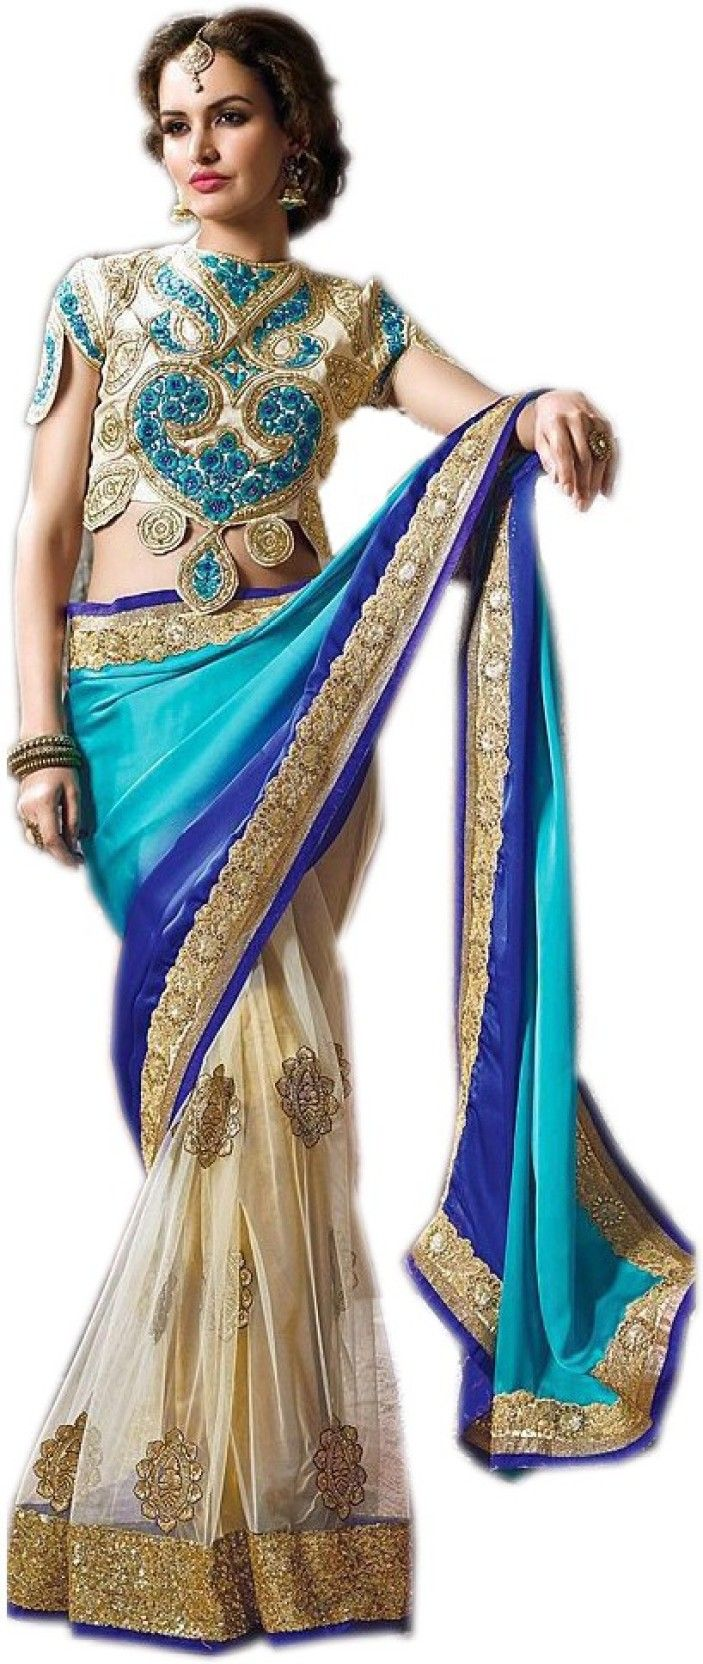 Fab Valley Embriodered Bollywood Georgette, Net Sari  (Blue, Beige) - http://www.zazva.com/shop/women/clothing-and-accessories/women-clothing/women-ethnic-wear/women-sarees/fab-valley-embriodered-bollywood-georgette-net-sari-blue-beige/ Saree Fabric: Georgette, Net Blouse Fabric: Dupion Silk With Blouse Piece Type: Bollywood  #EmbrioderedSaree, #FashionSaree, #Saree